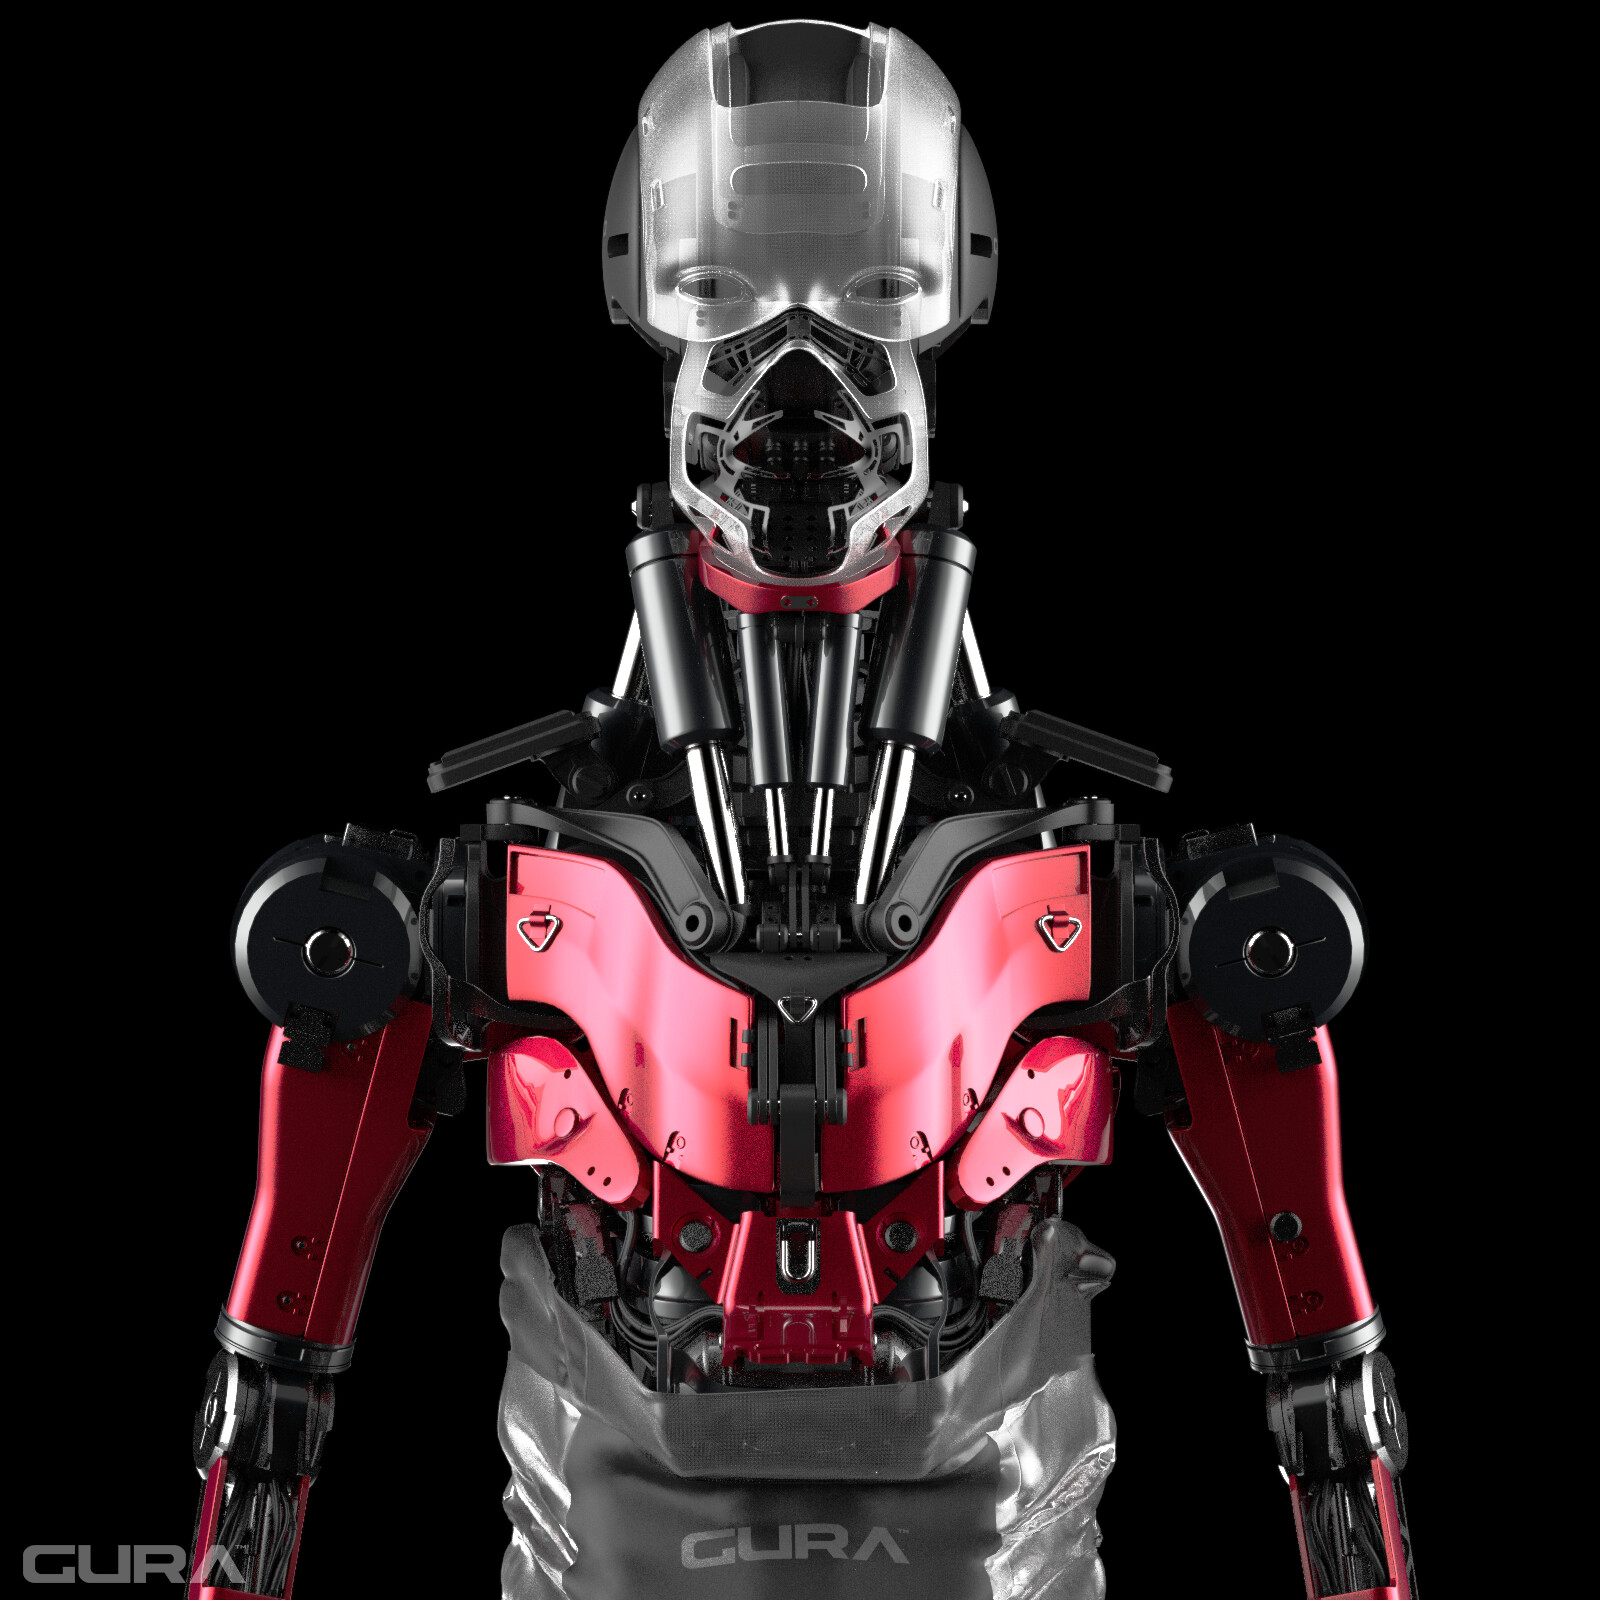 Edon guraziu gura droid red b